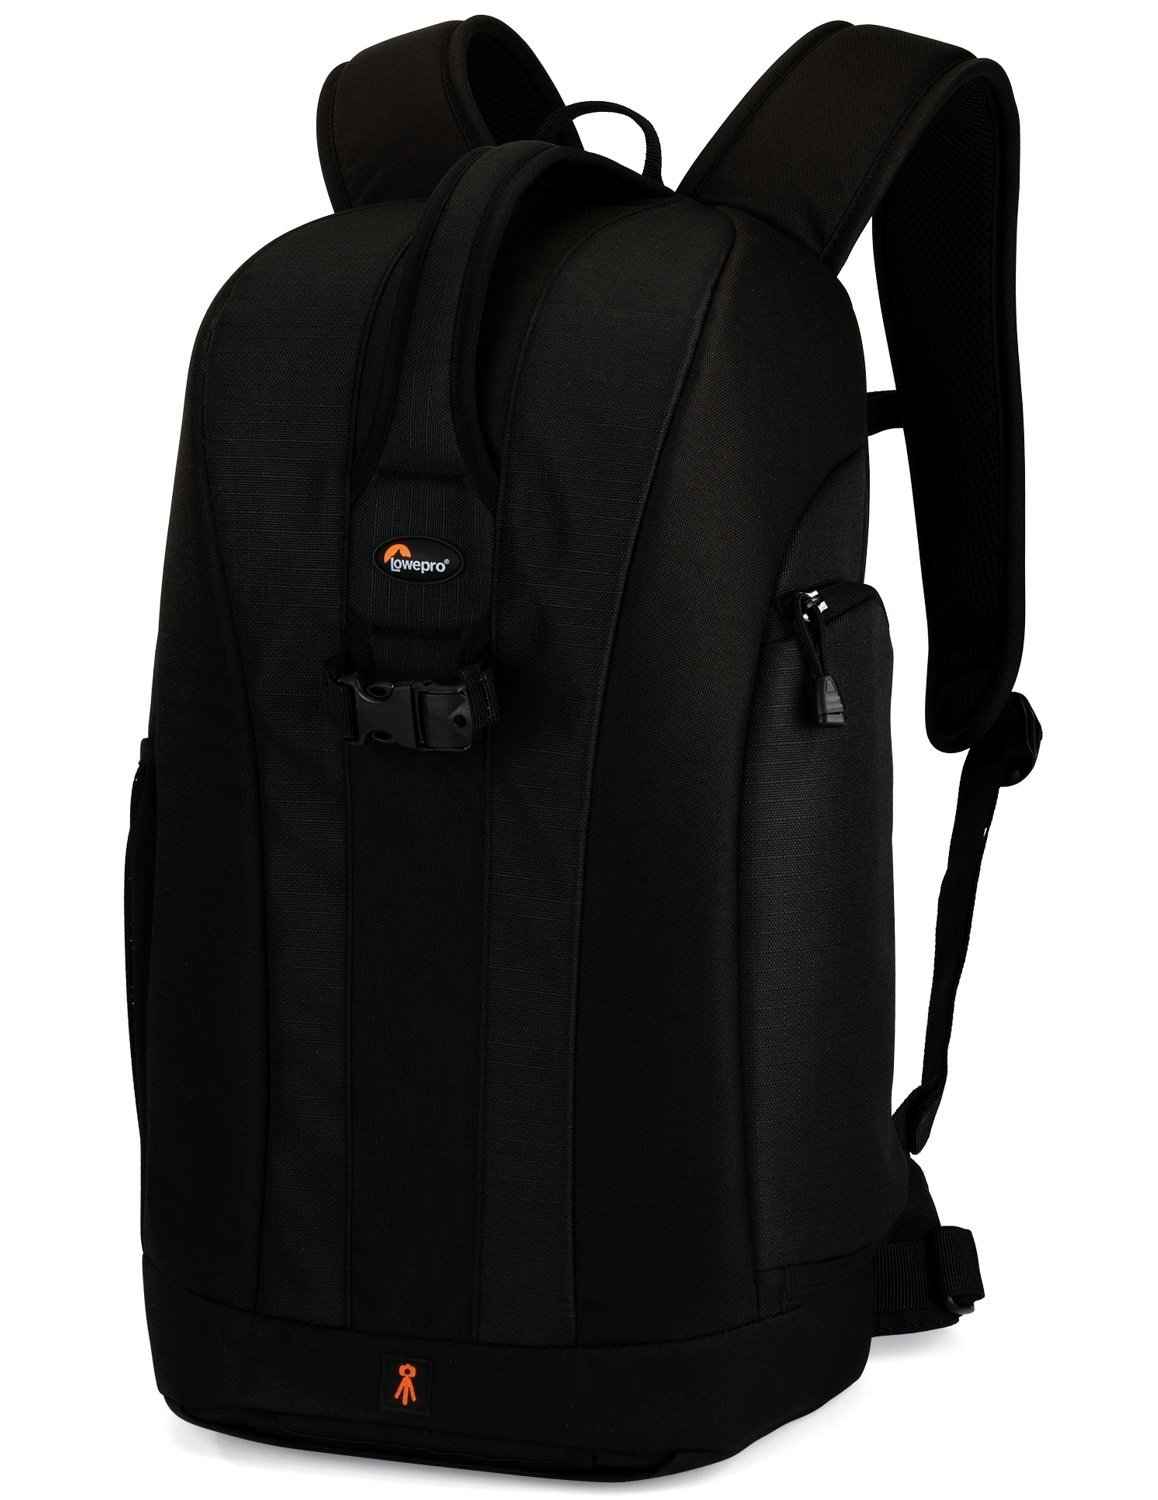 d1d0a5f9e688 ... 10 Best DSLR Camera Backpacks of 2019. Lowepro Flipside 300